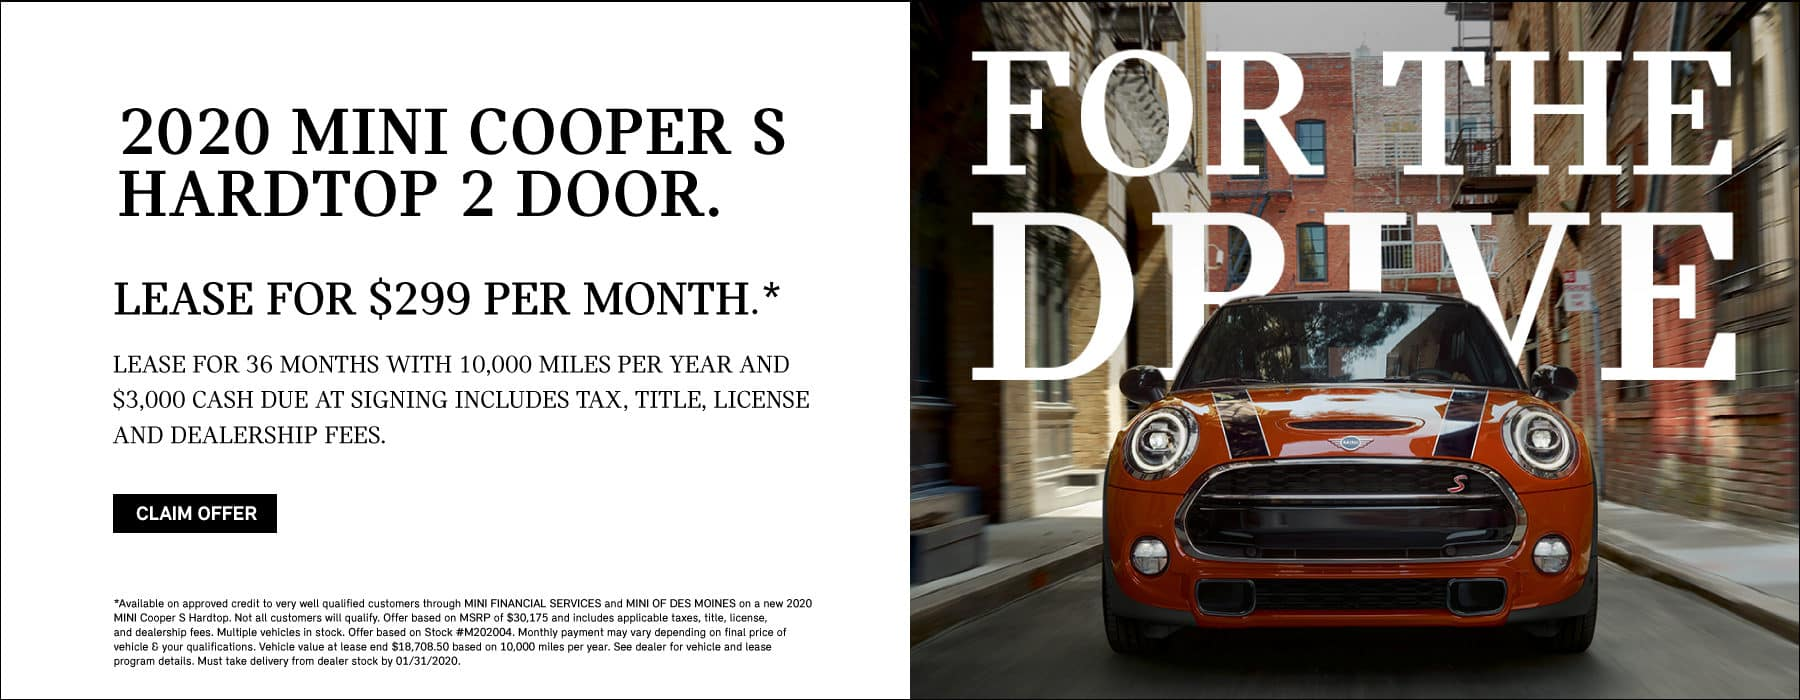 lease a 2020 mini cooper s hardtop 2 door for $349/month for 36 months with 10,000 miles per year. claim offer